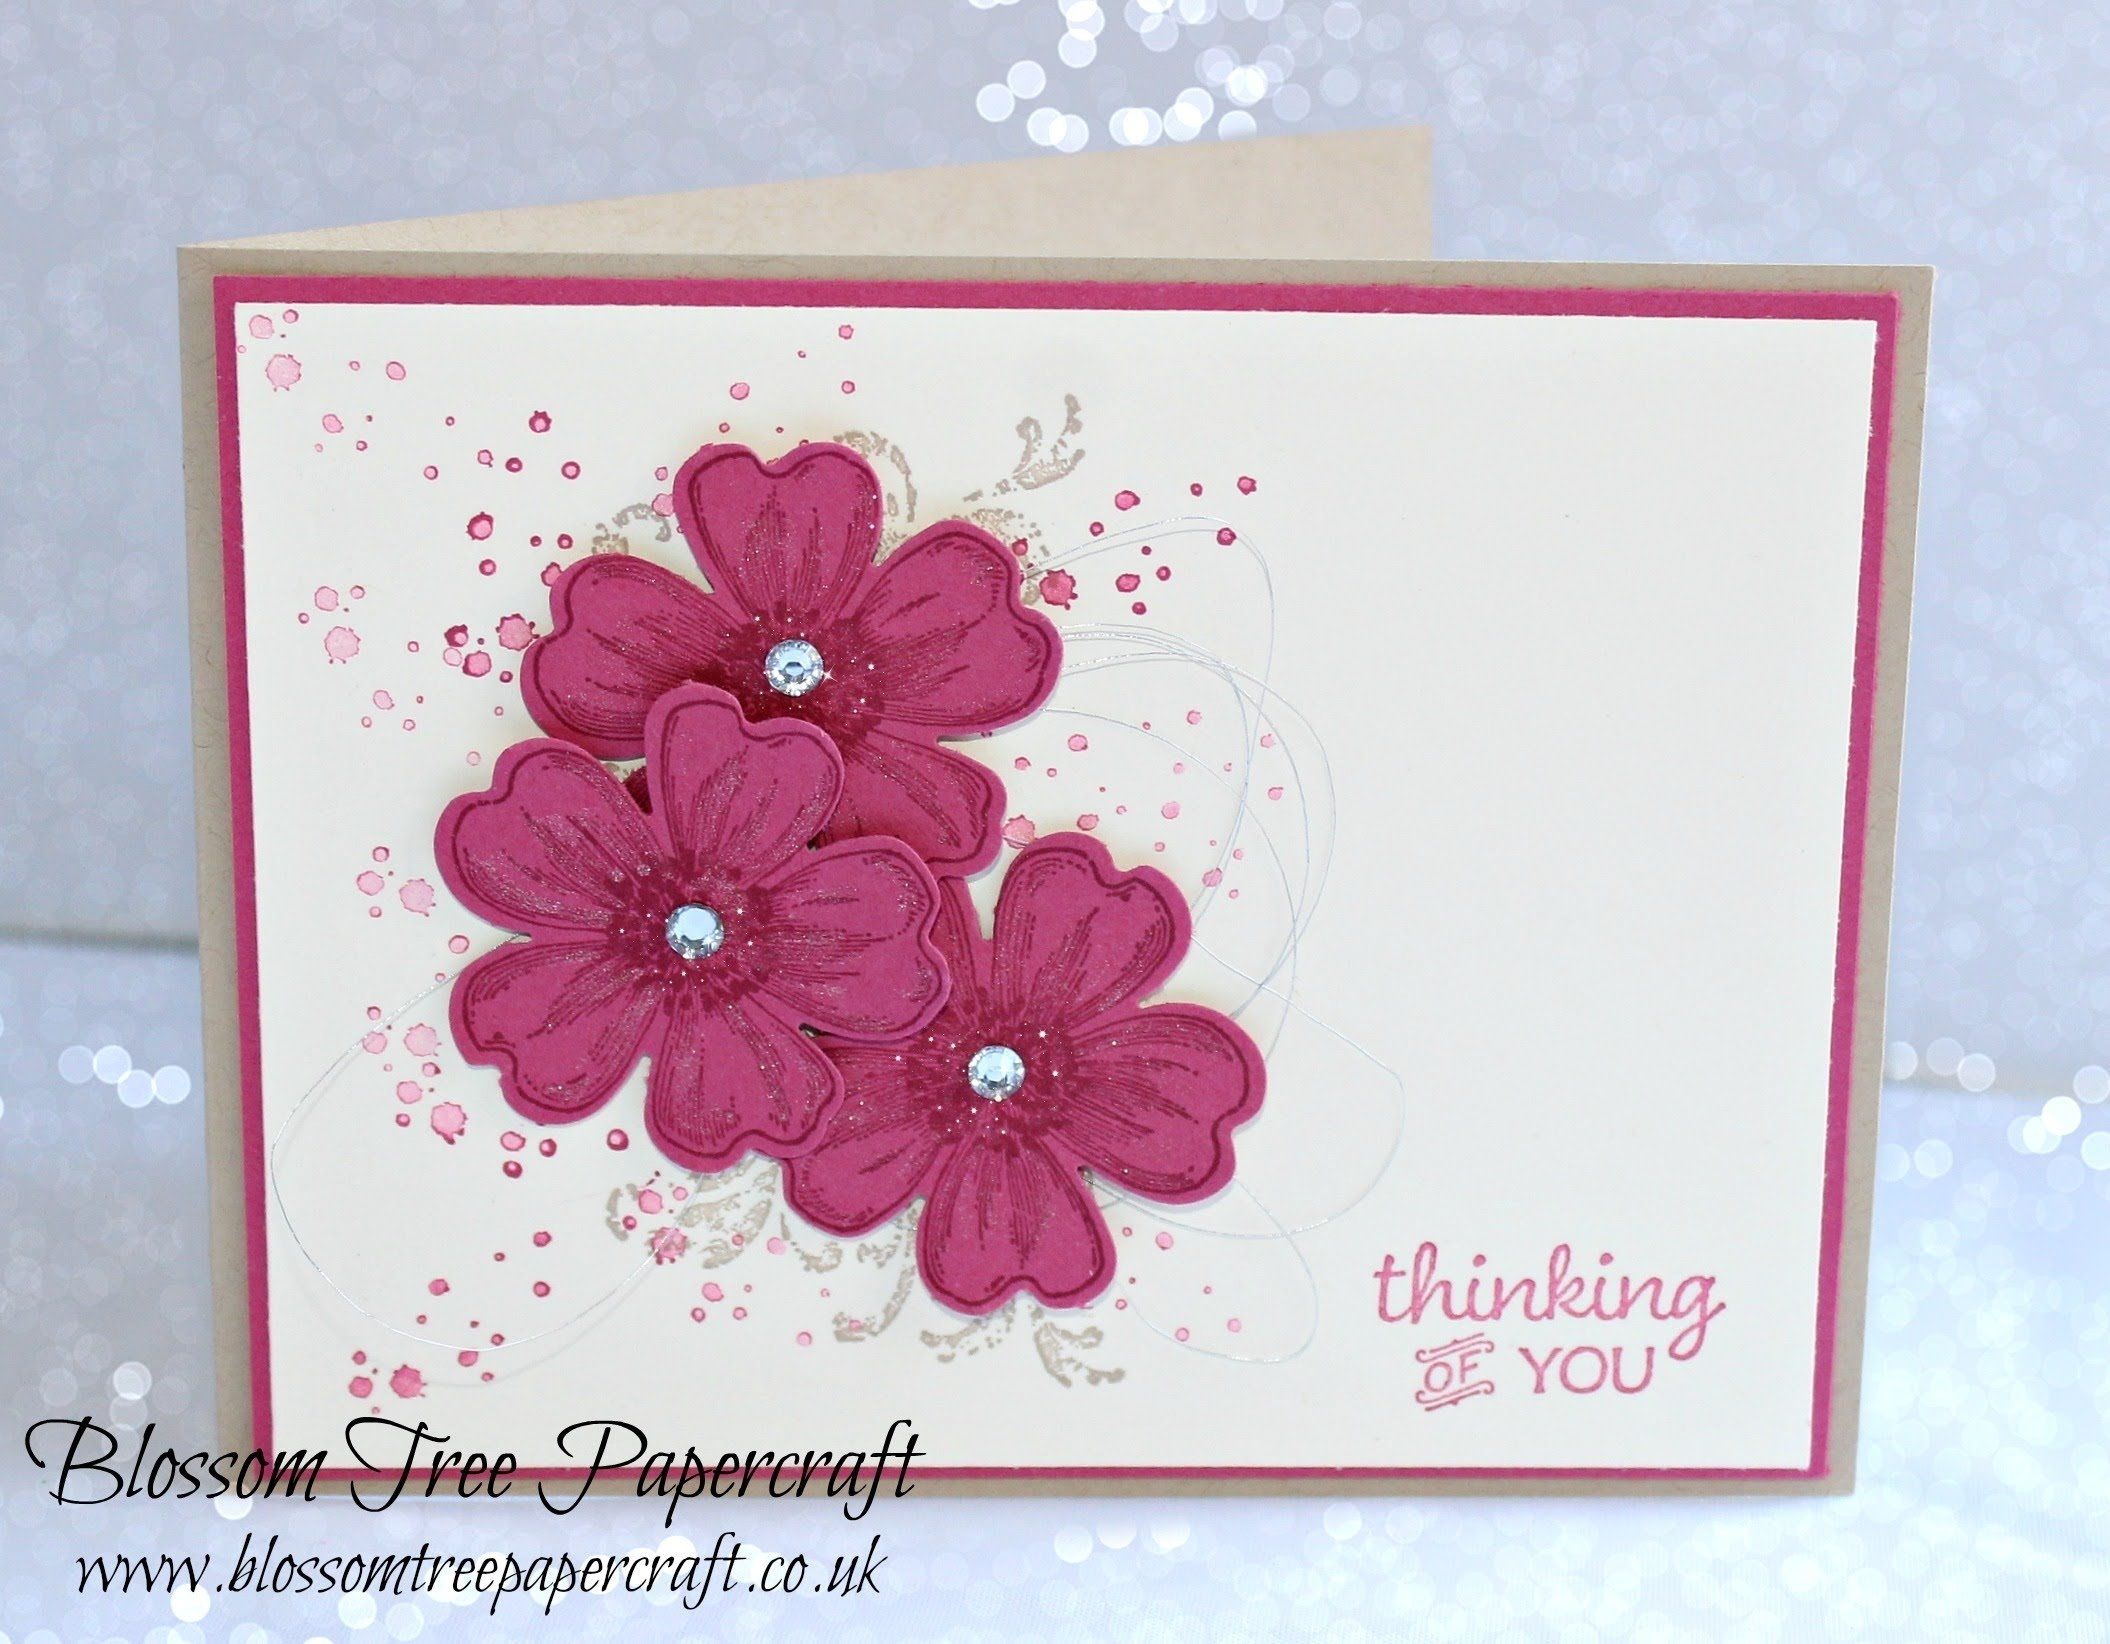 10 Most Popular Thinking Of You Card Ideas stampin up timeless textures with flower shop thinking of you card